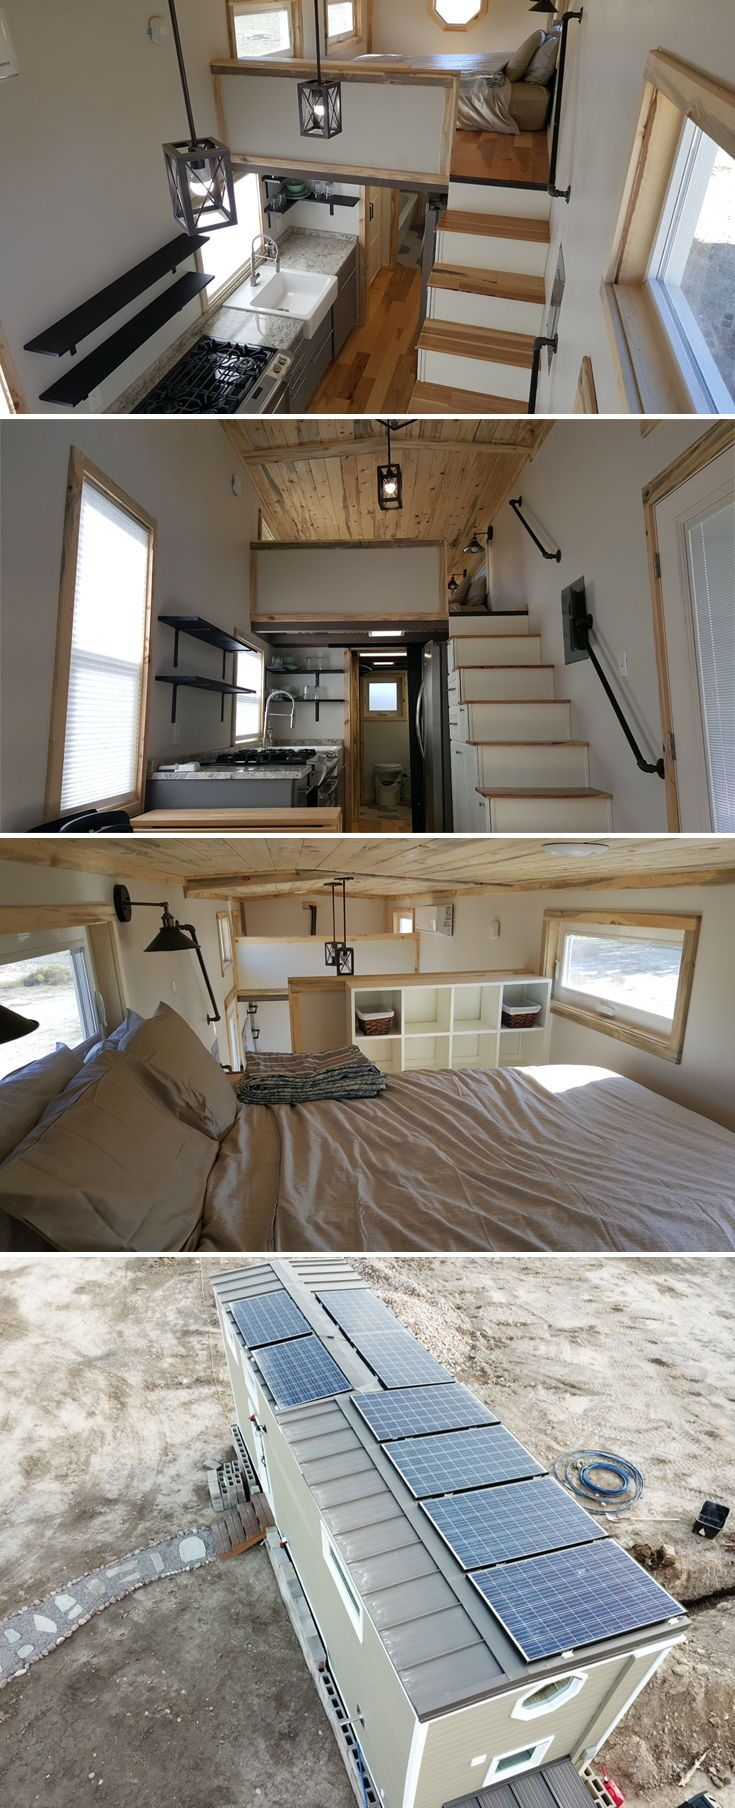 Tiny Solar Home By Alpine Homes Small Houses Designs Pinterest Storage And Utah